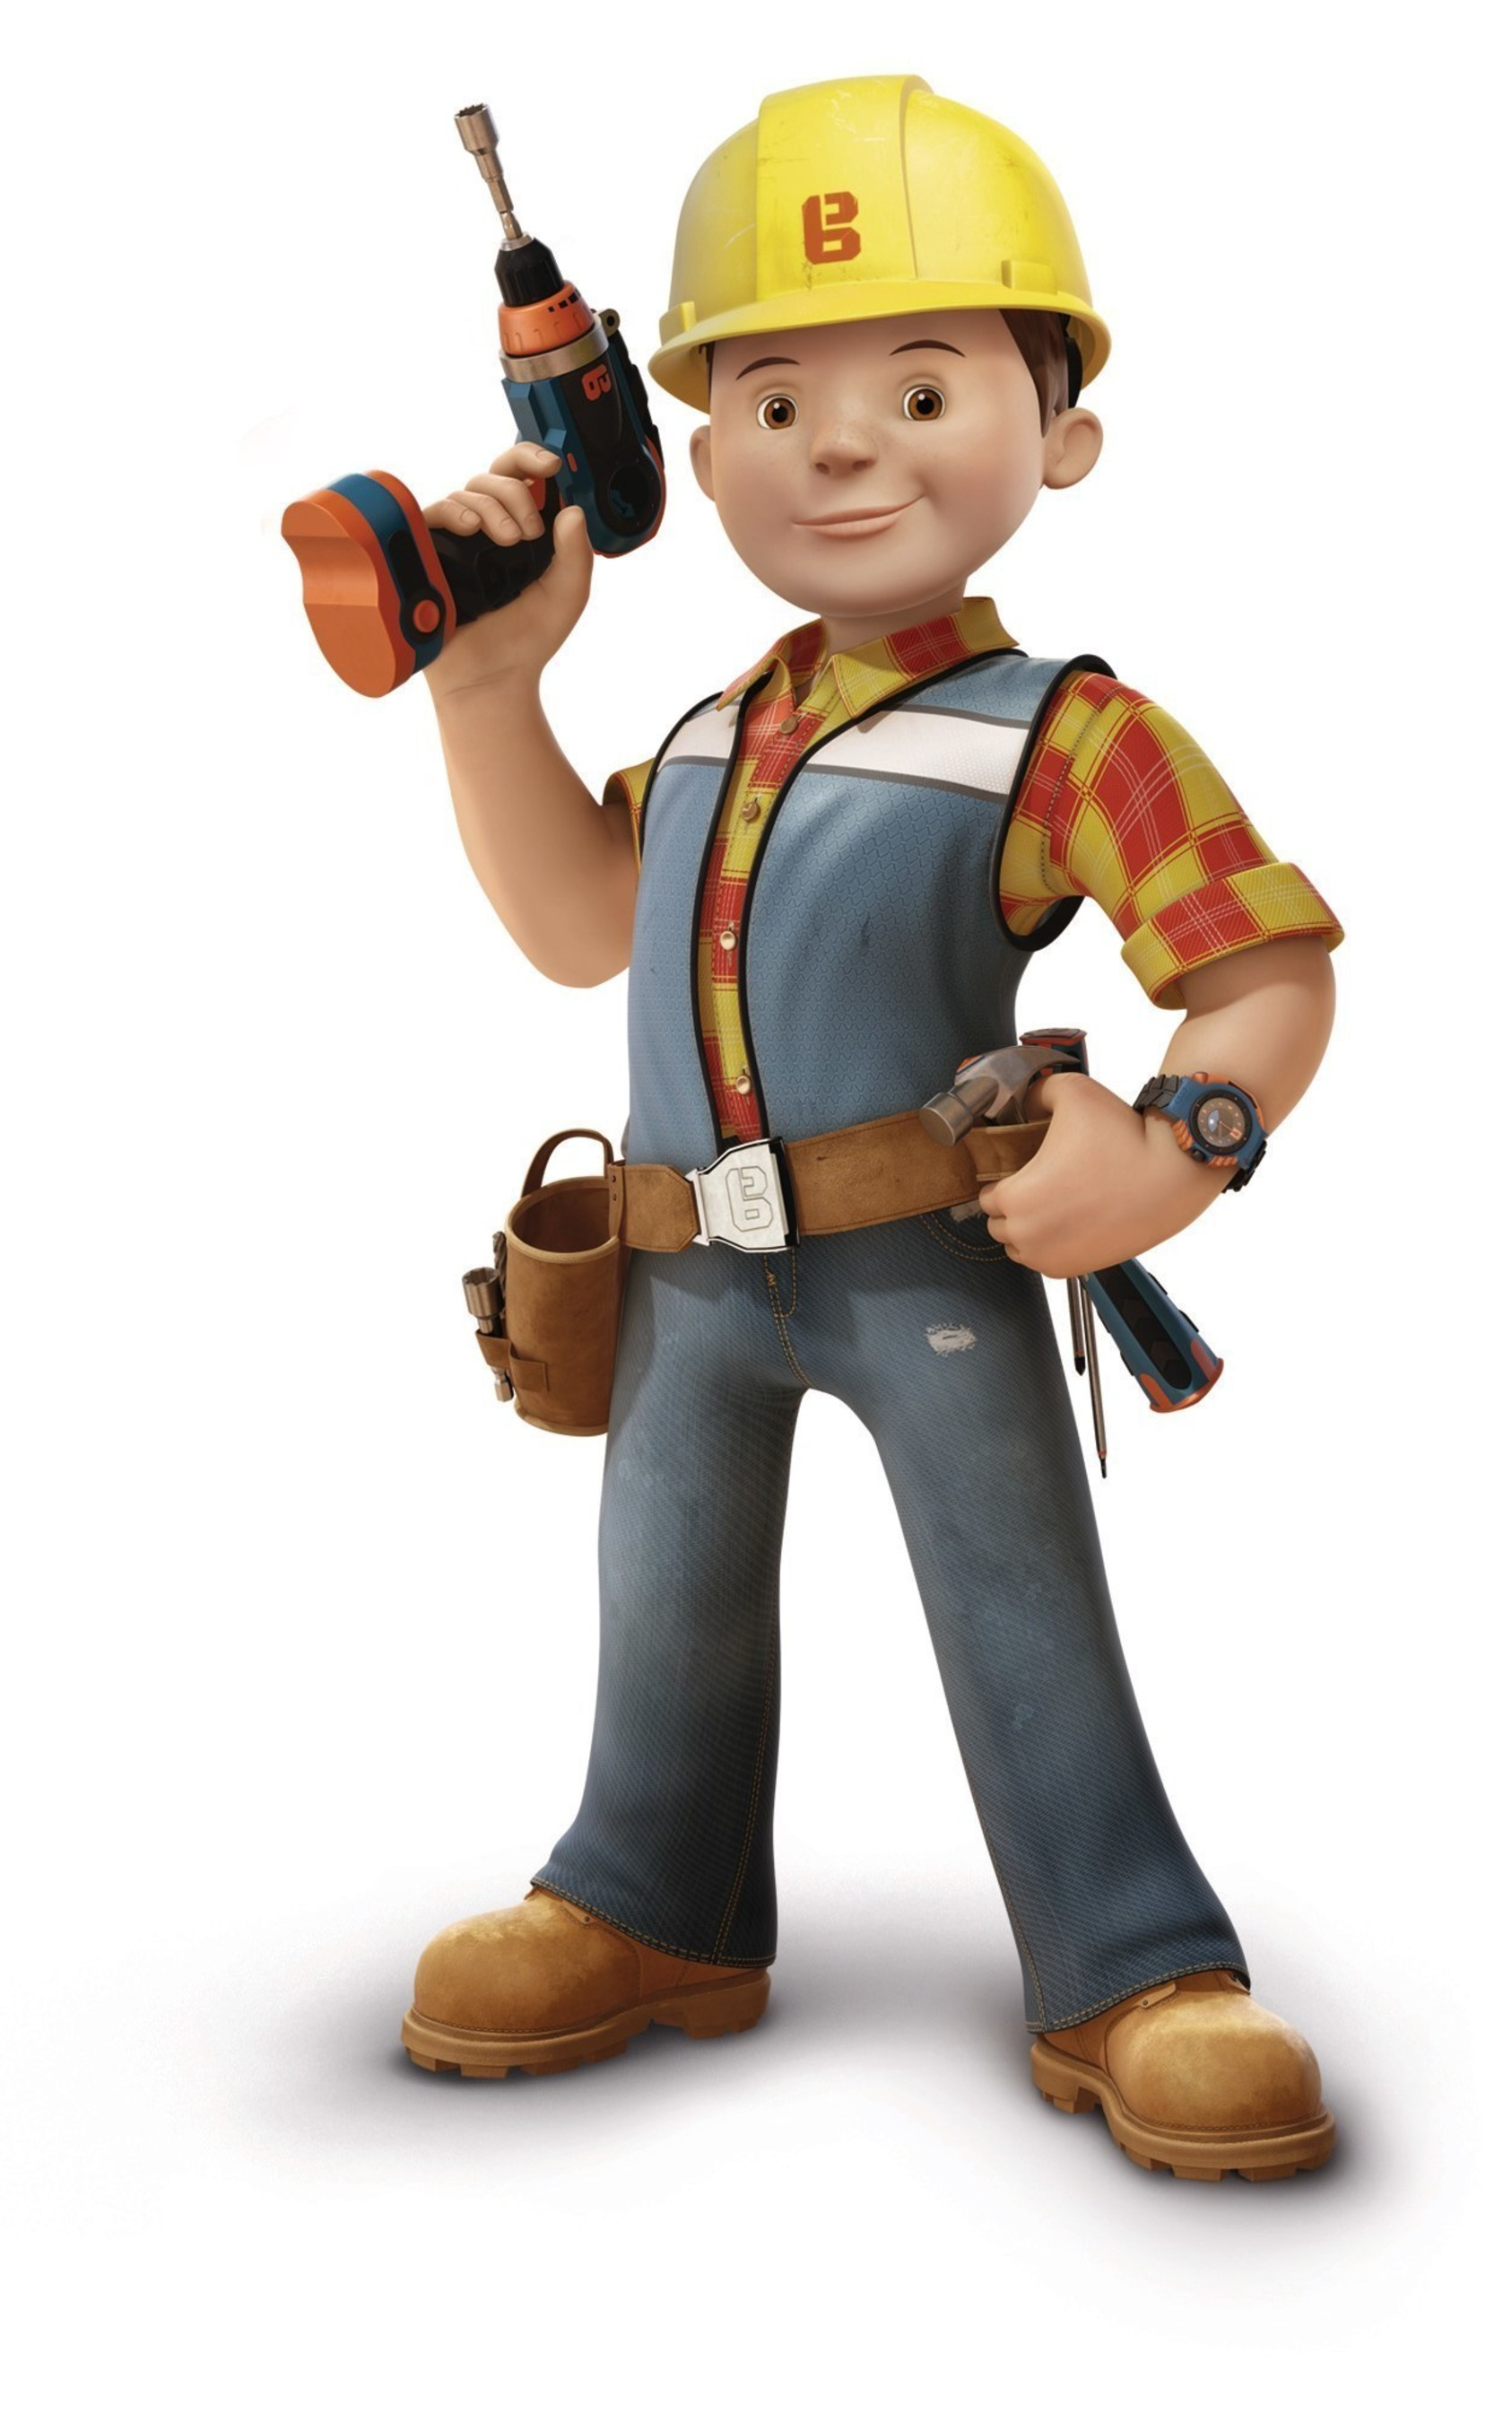 Fireman Sam 3d Wallpaper Bob The Builder Is Back With Brand New Content Bringing